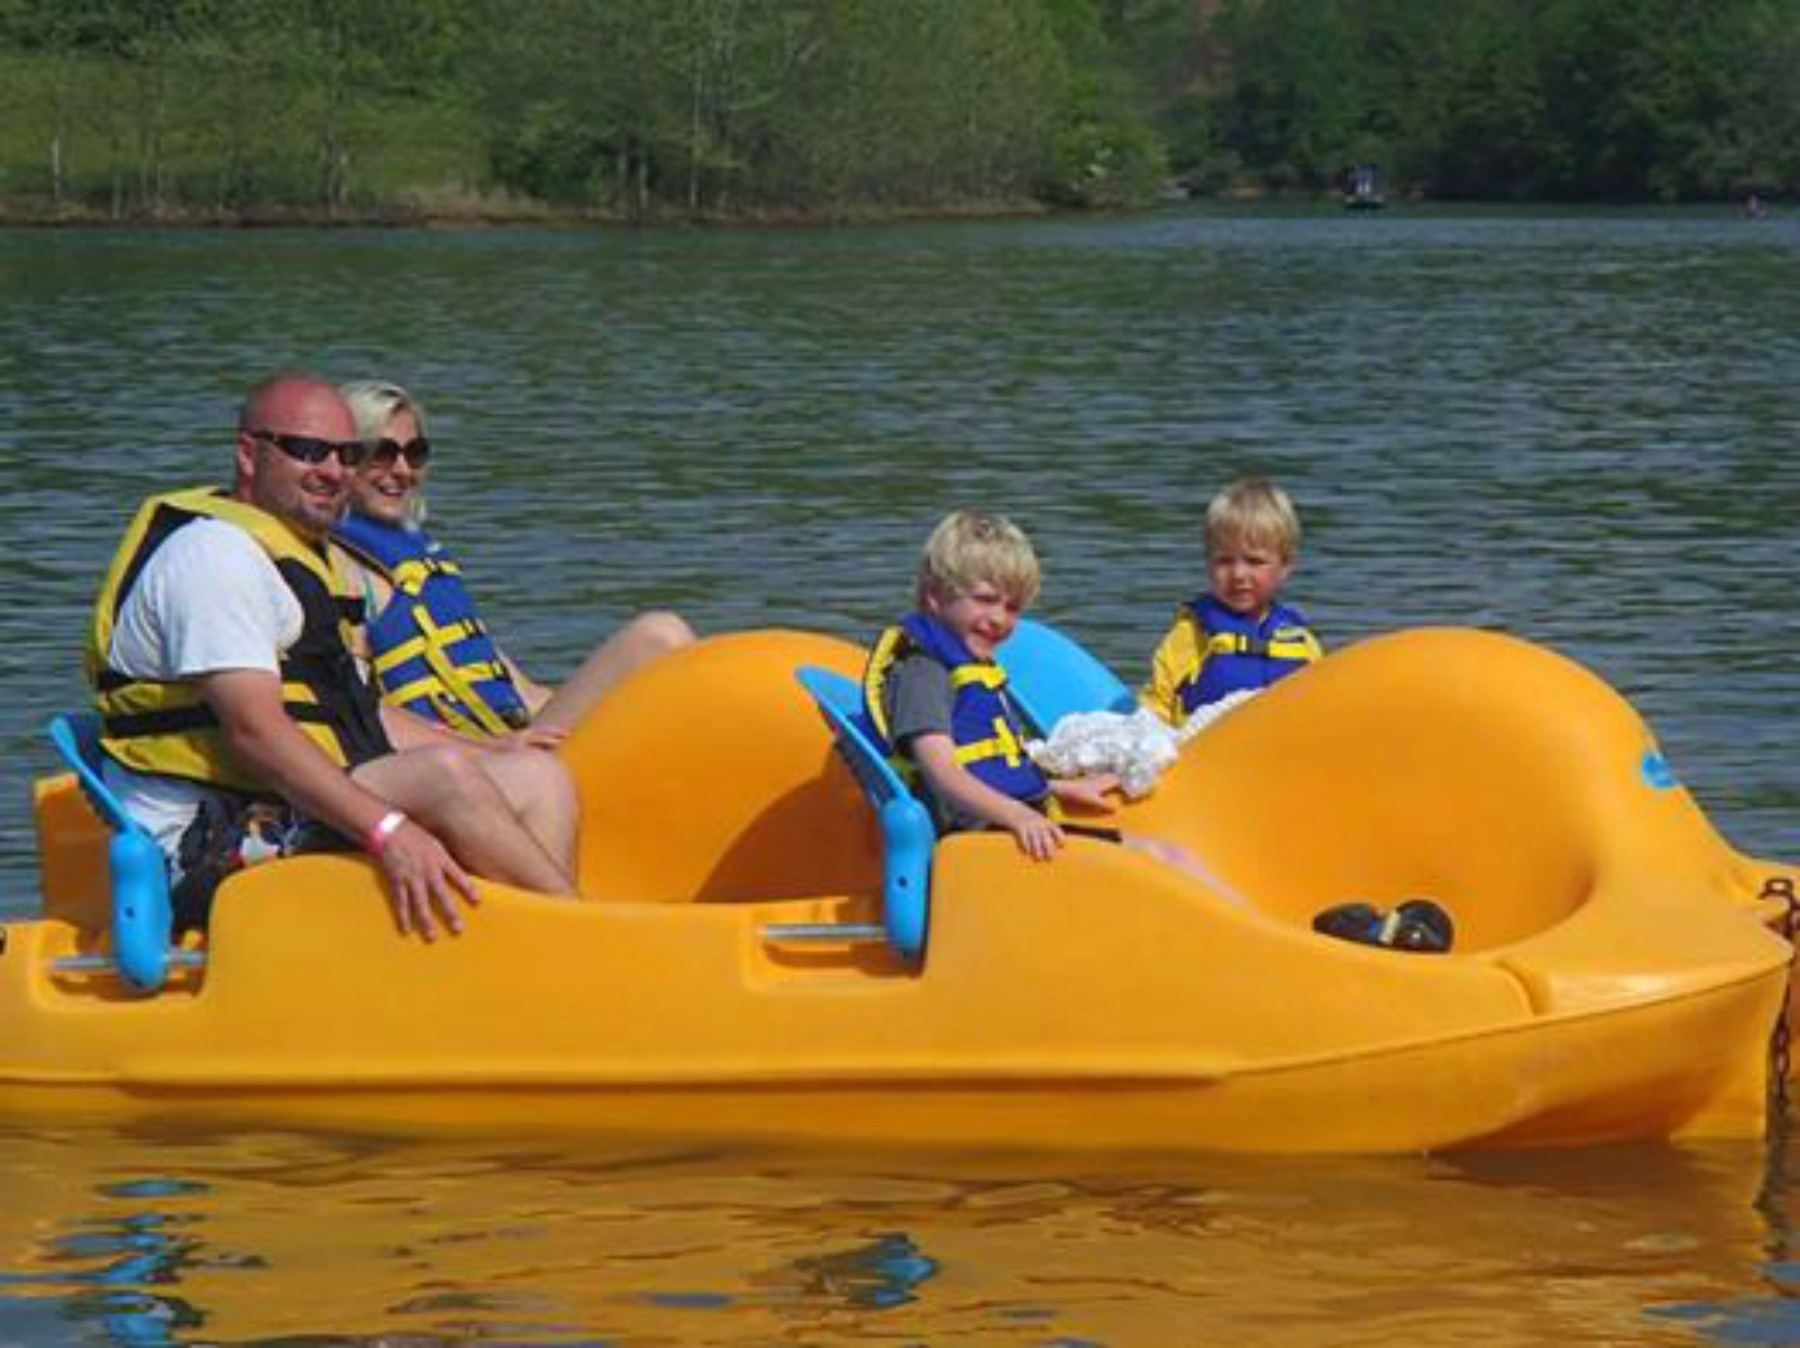 stonewall resort, paddleboats, summer fun